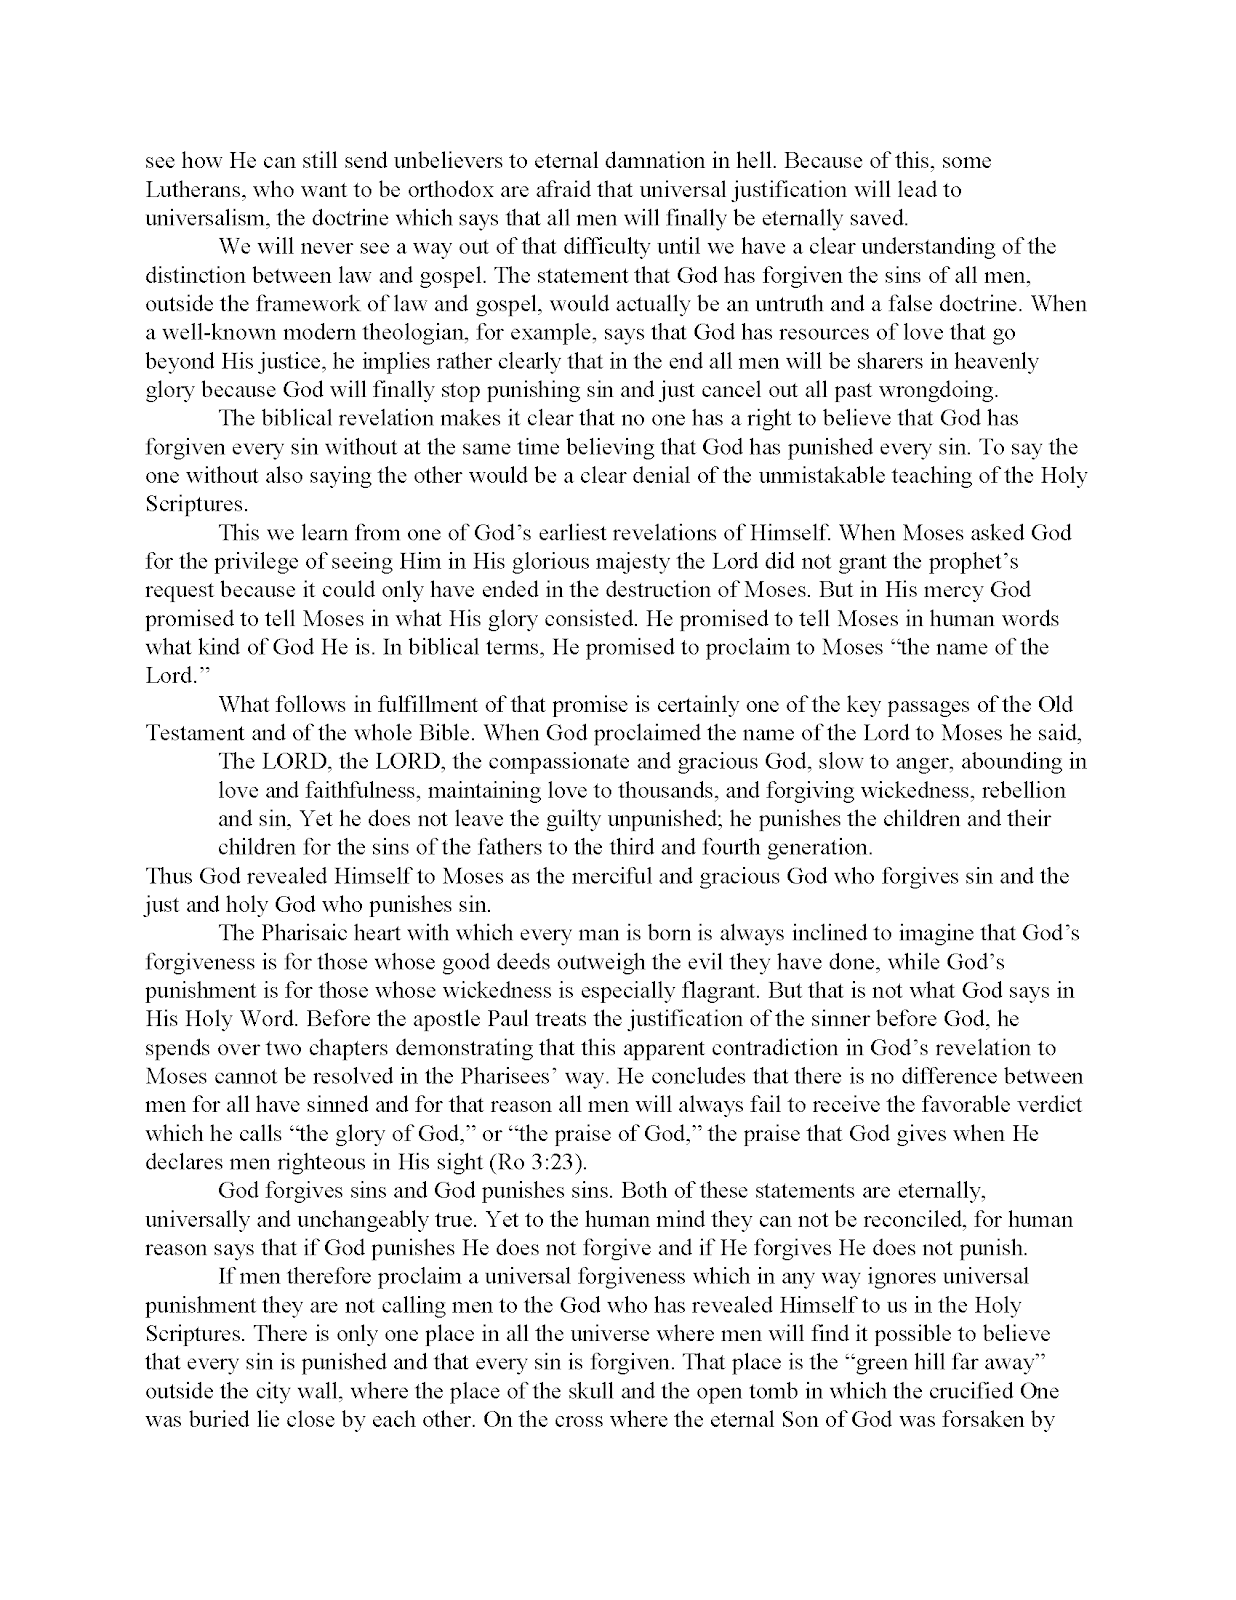 5000 word essay on integrity